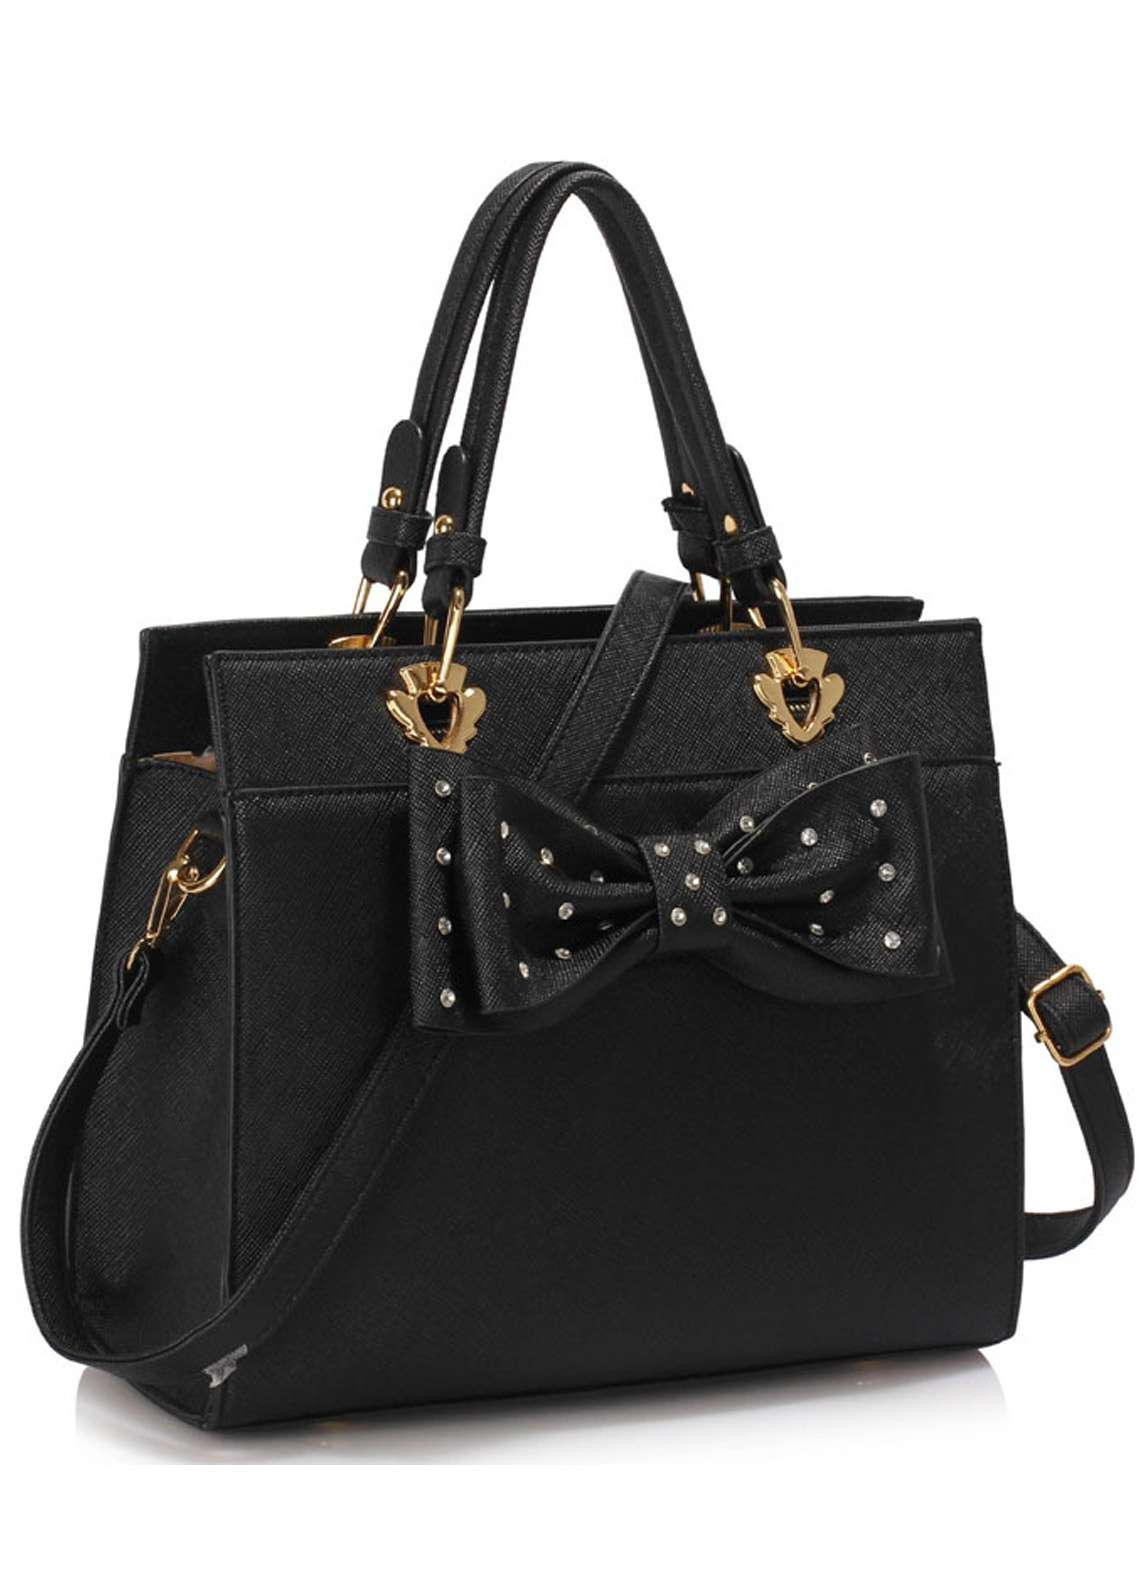 Leesun London Faux Leather Satchels Bags  for Women  Black with Bow Style